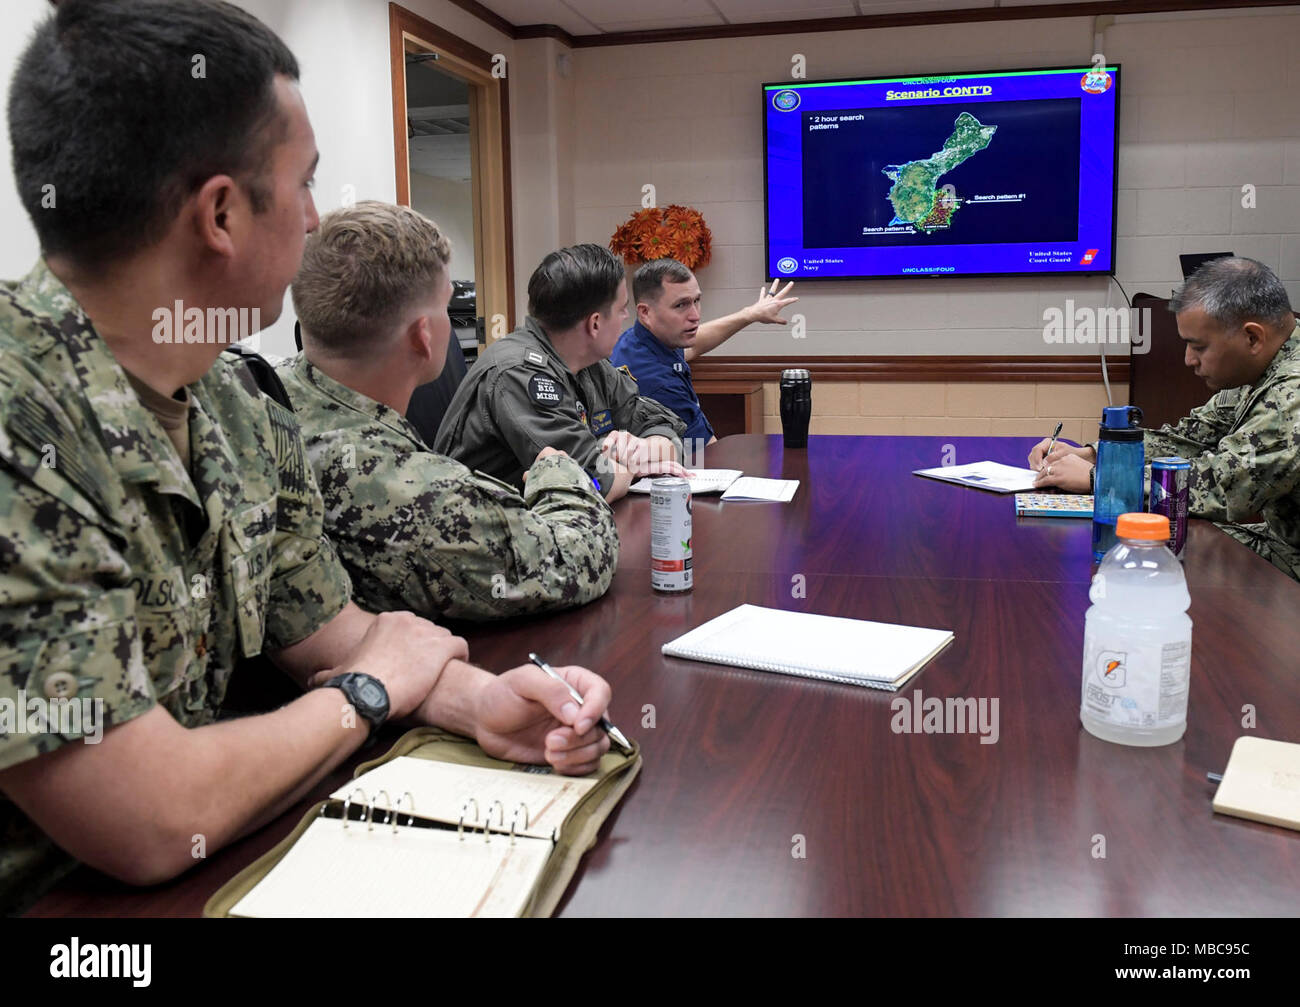 U.S. Coast Guard Lt. Cliff Graham, assigned to USCG, Sector Guam, explains the drift-current complications in a search area off the eastern coast of Guam during a table-top exercise designed to demonstrate interoperability for a joint search and rescue operation, Feb. 16, 2018. CTF 75 is the primary expeditionary task force responsible for the planning and execution of coastal riverine operations, explosive ordnance disposal, diving engineering and construction and underwater construction in the U.S. 7th Fleet area of operations. (U.S. Navy Combat Camera Stock Photo